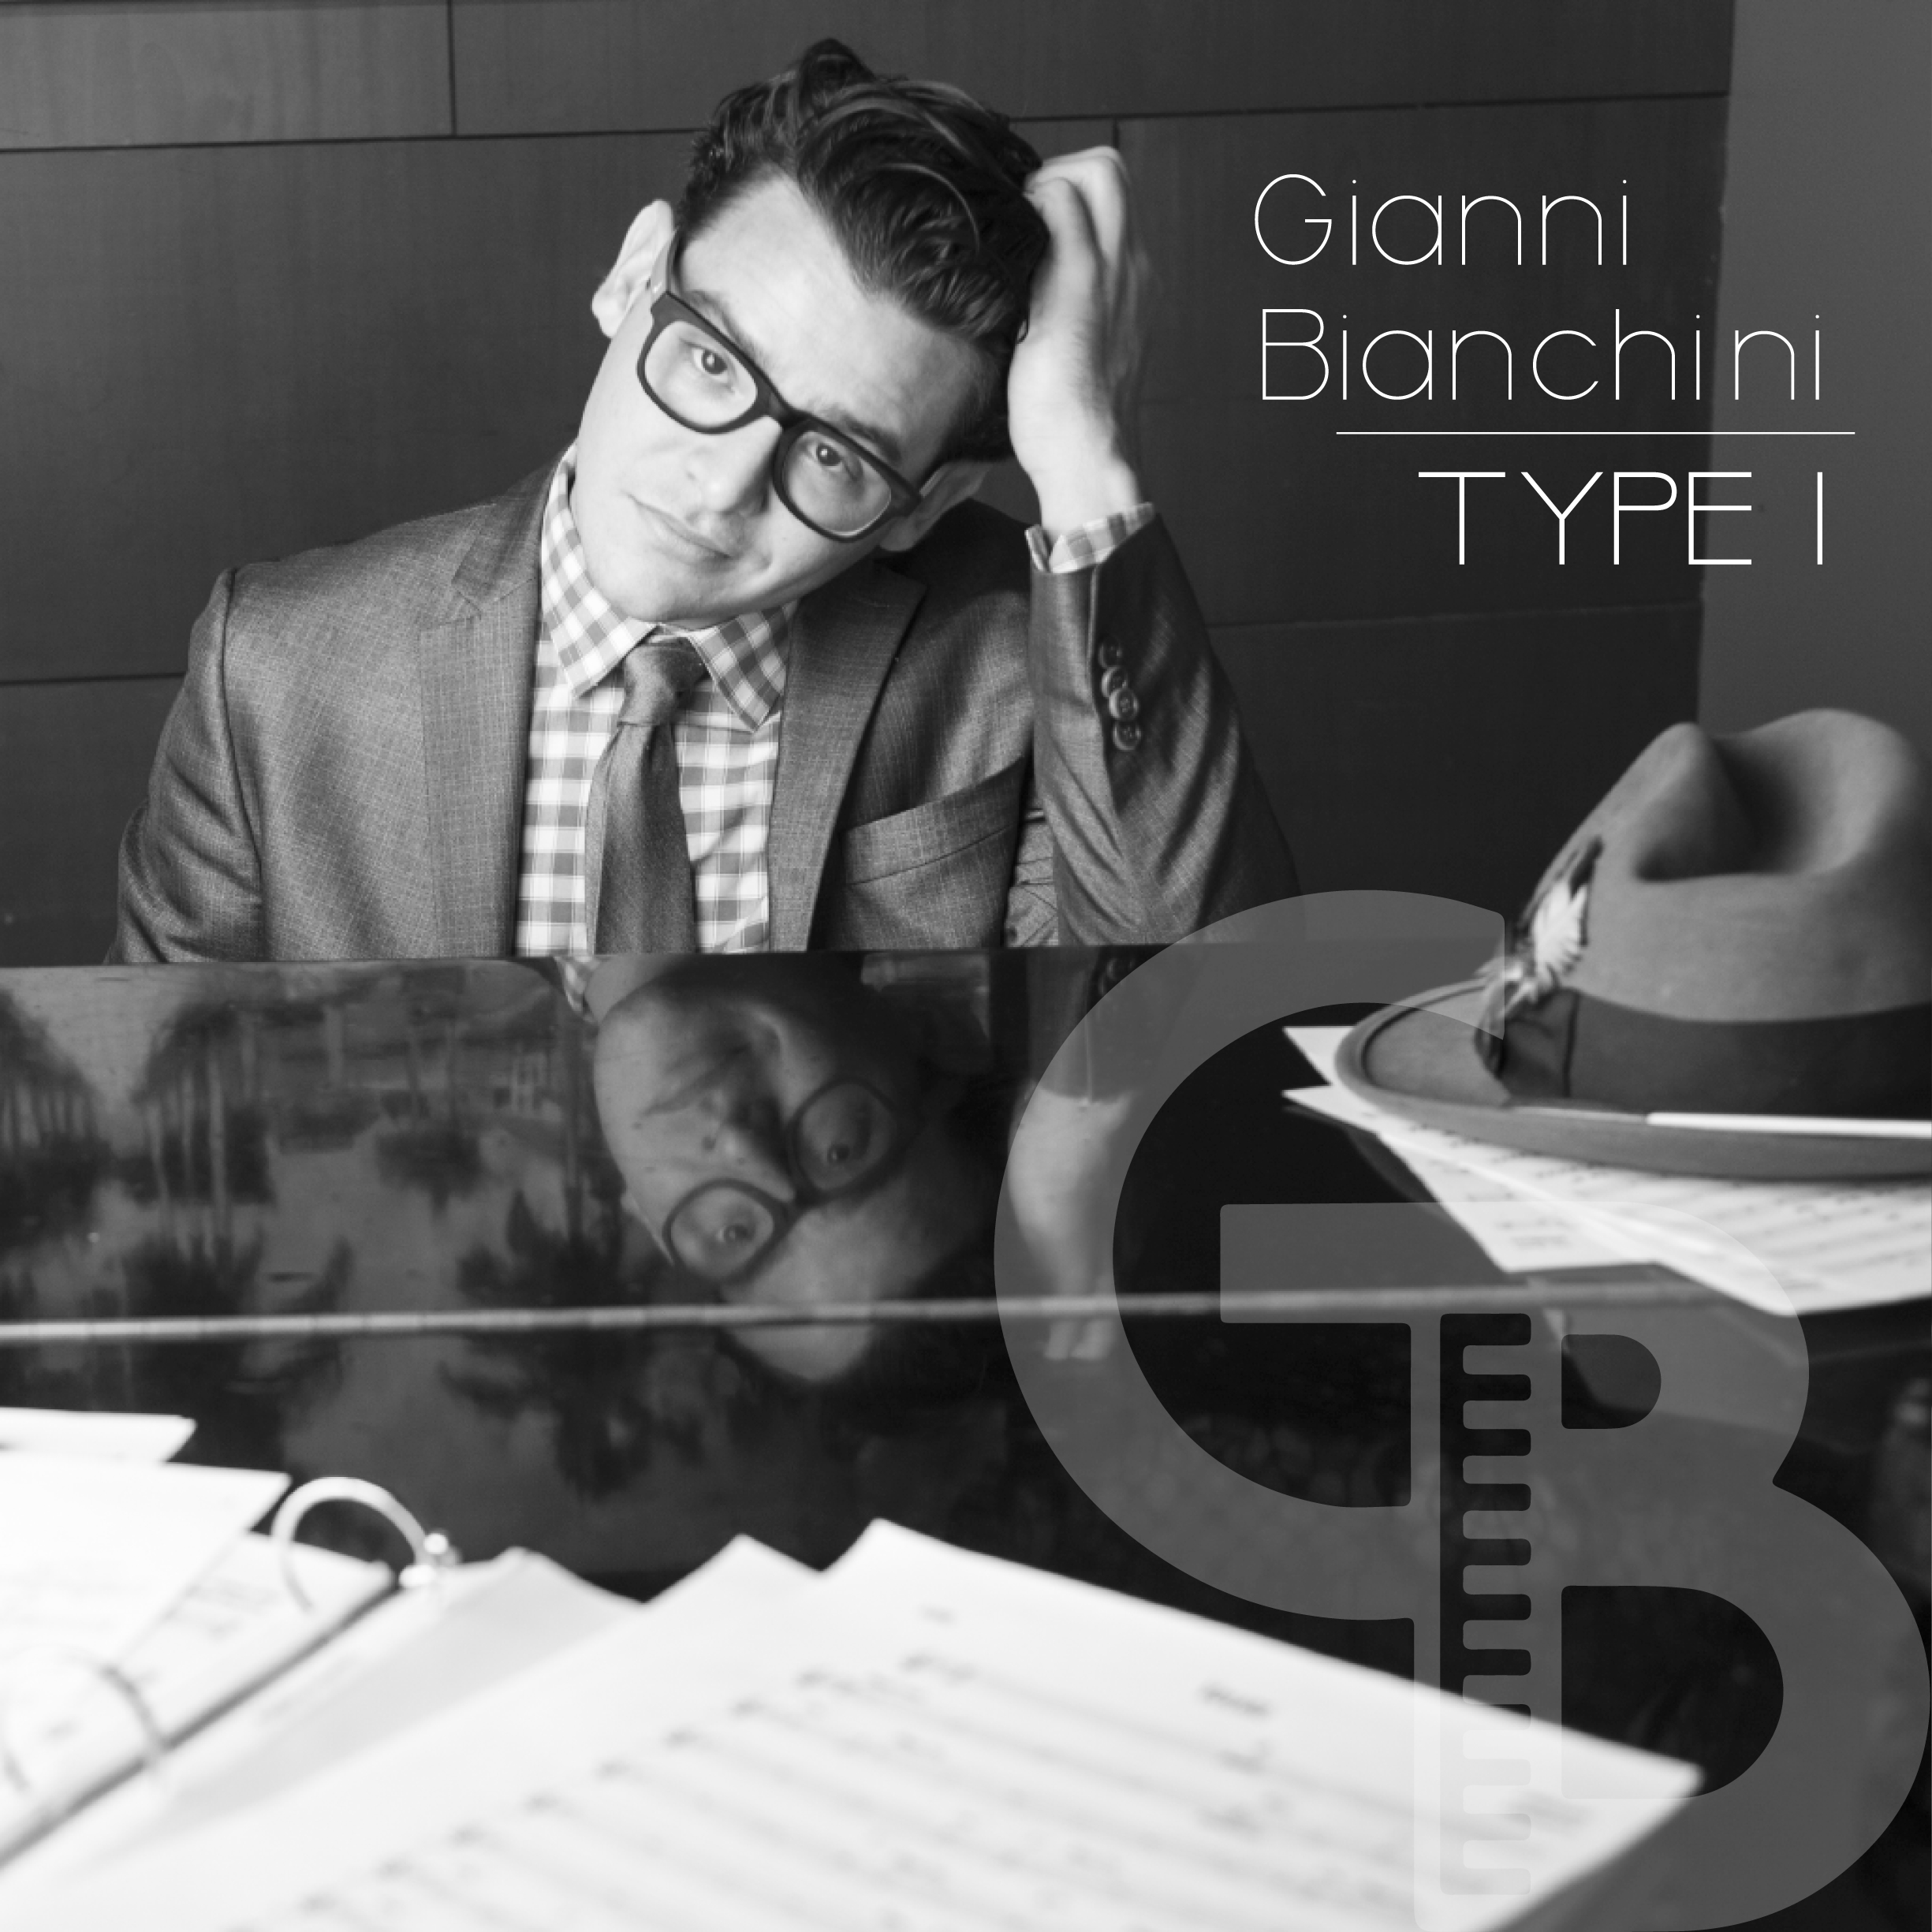 Vocalist/Pianist Gianni Bianchini To Release Debut Album 'Type I' February 21, 2017